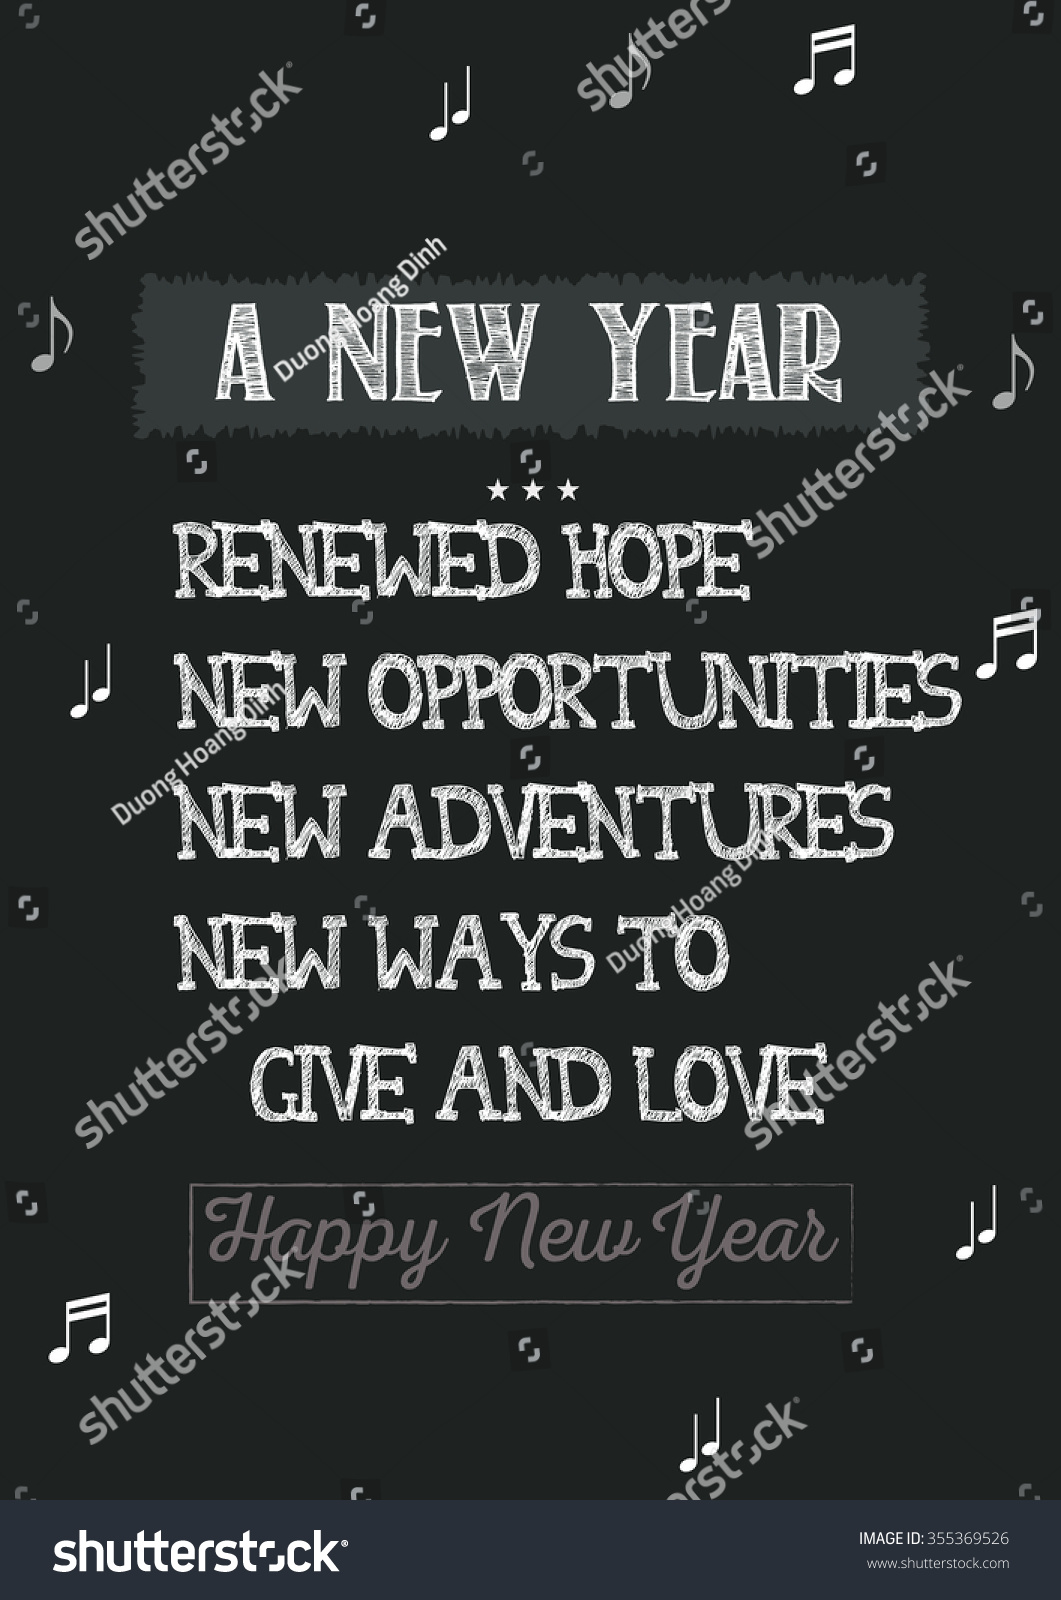 new year quote a new year renewed hope new opportunities ways to